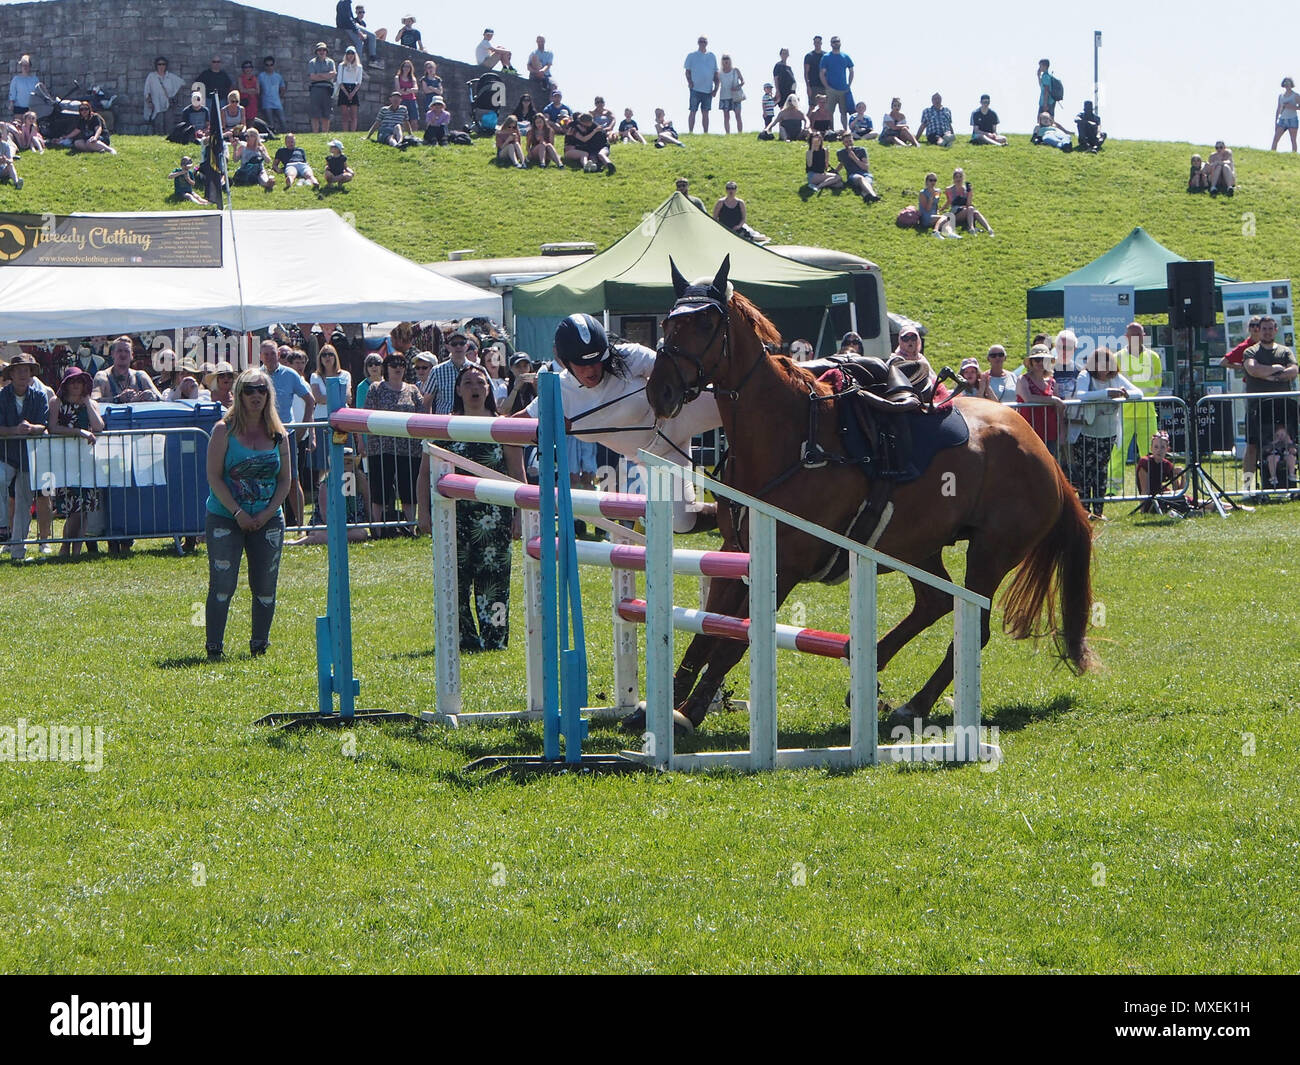 A rider falls from her horse during a showjumping event - Stock Image